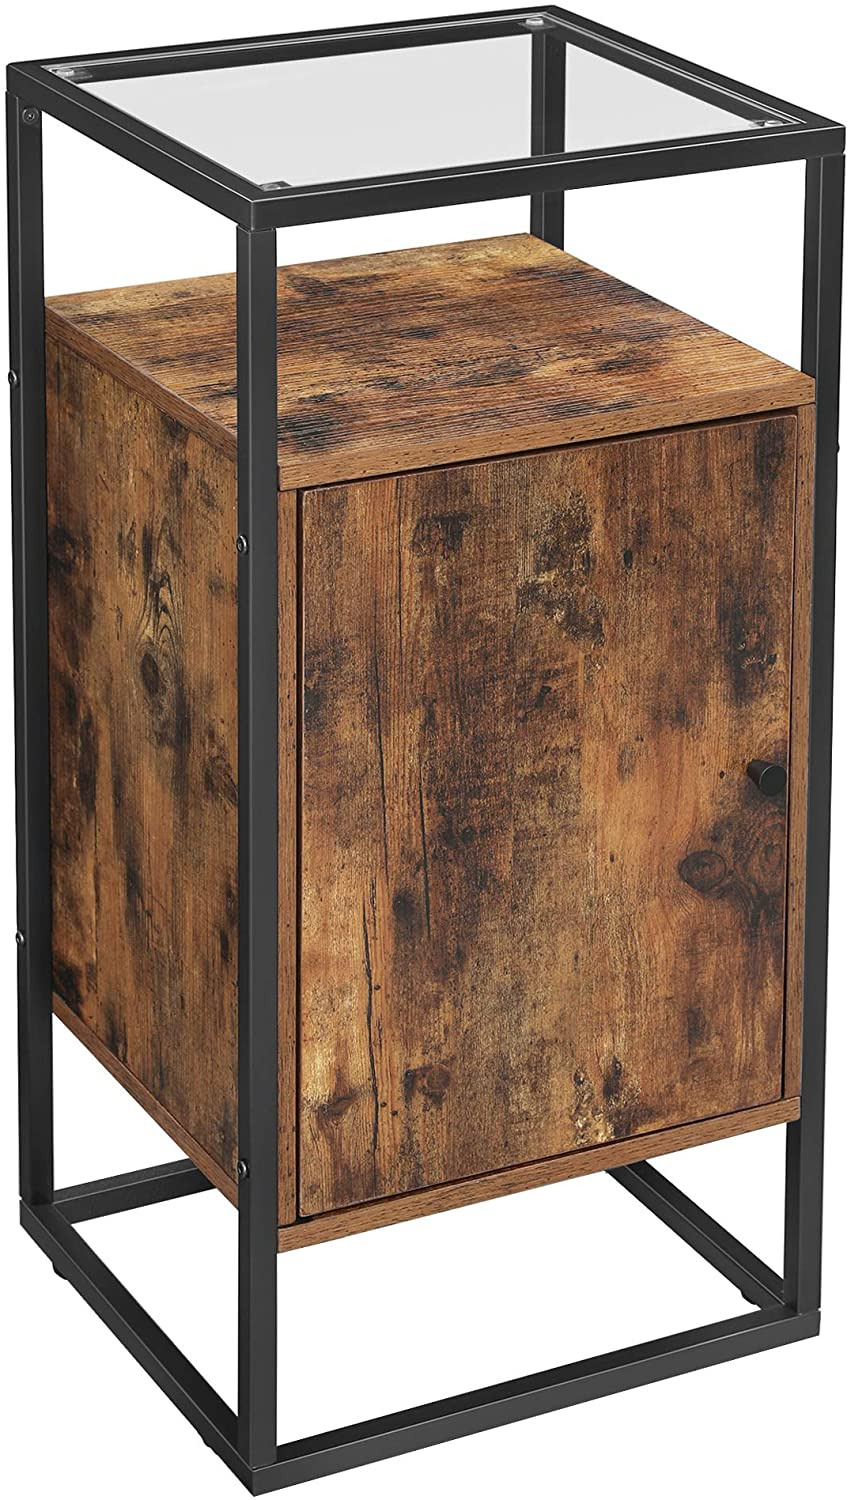 Shop hawkinswoodshop.com for solid wood & metal modern, traditional, contemporary, industrial, custom, rustic, and farmhouse furniture including our Ryan Glass Side Table & Adjustable Cabinet Shelf w/ Steel Frame.  Enjoy free nationwide shipping, help with the fight against hunger in the US, and support a family owned and operated business that helps puts food on the table for folks in rural Northern California.